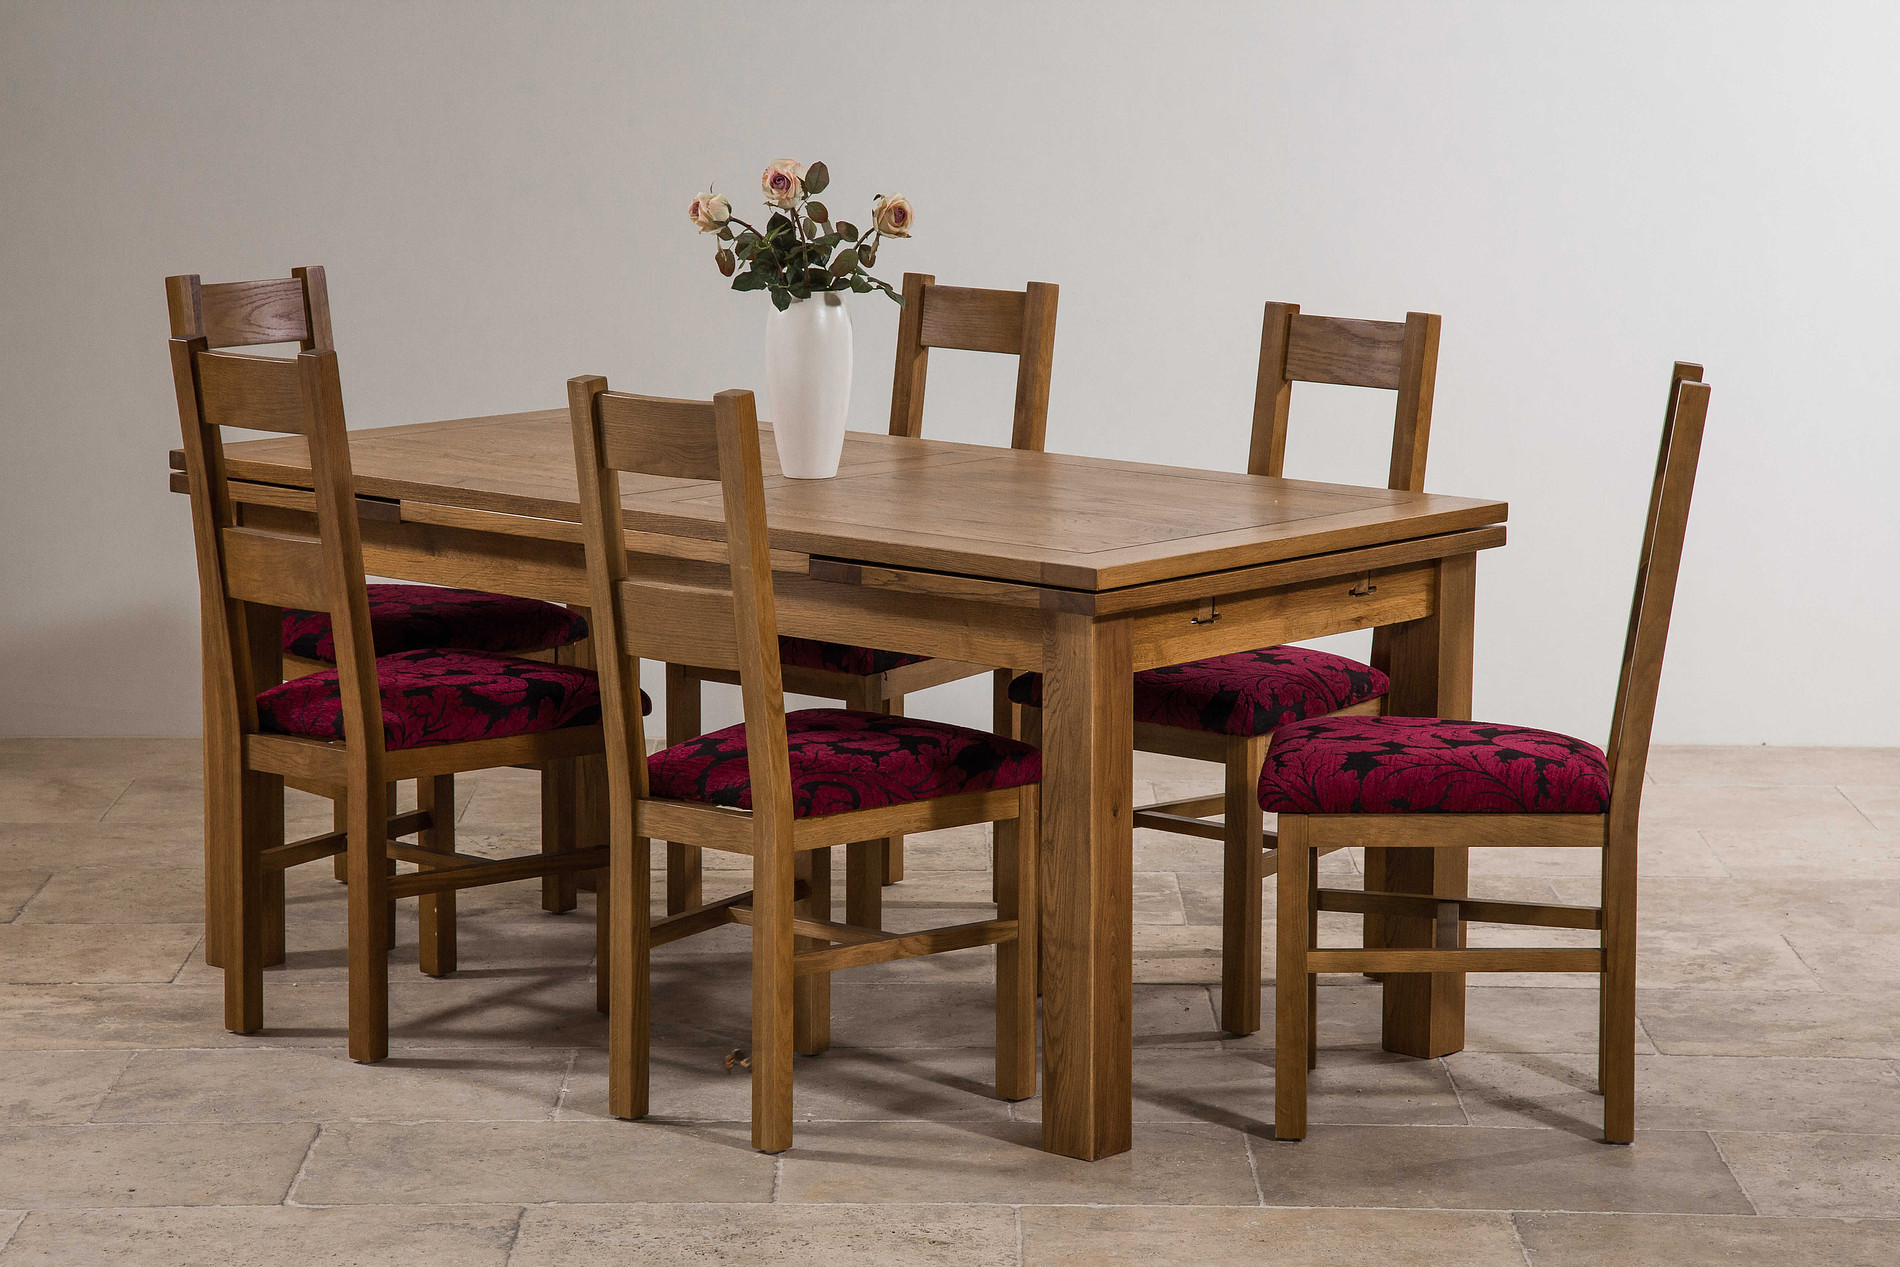 Dining Tables For 12 Persons 6ft X 3ft Rustic Solid Oak Extending Dining Table Seats